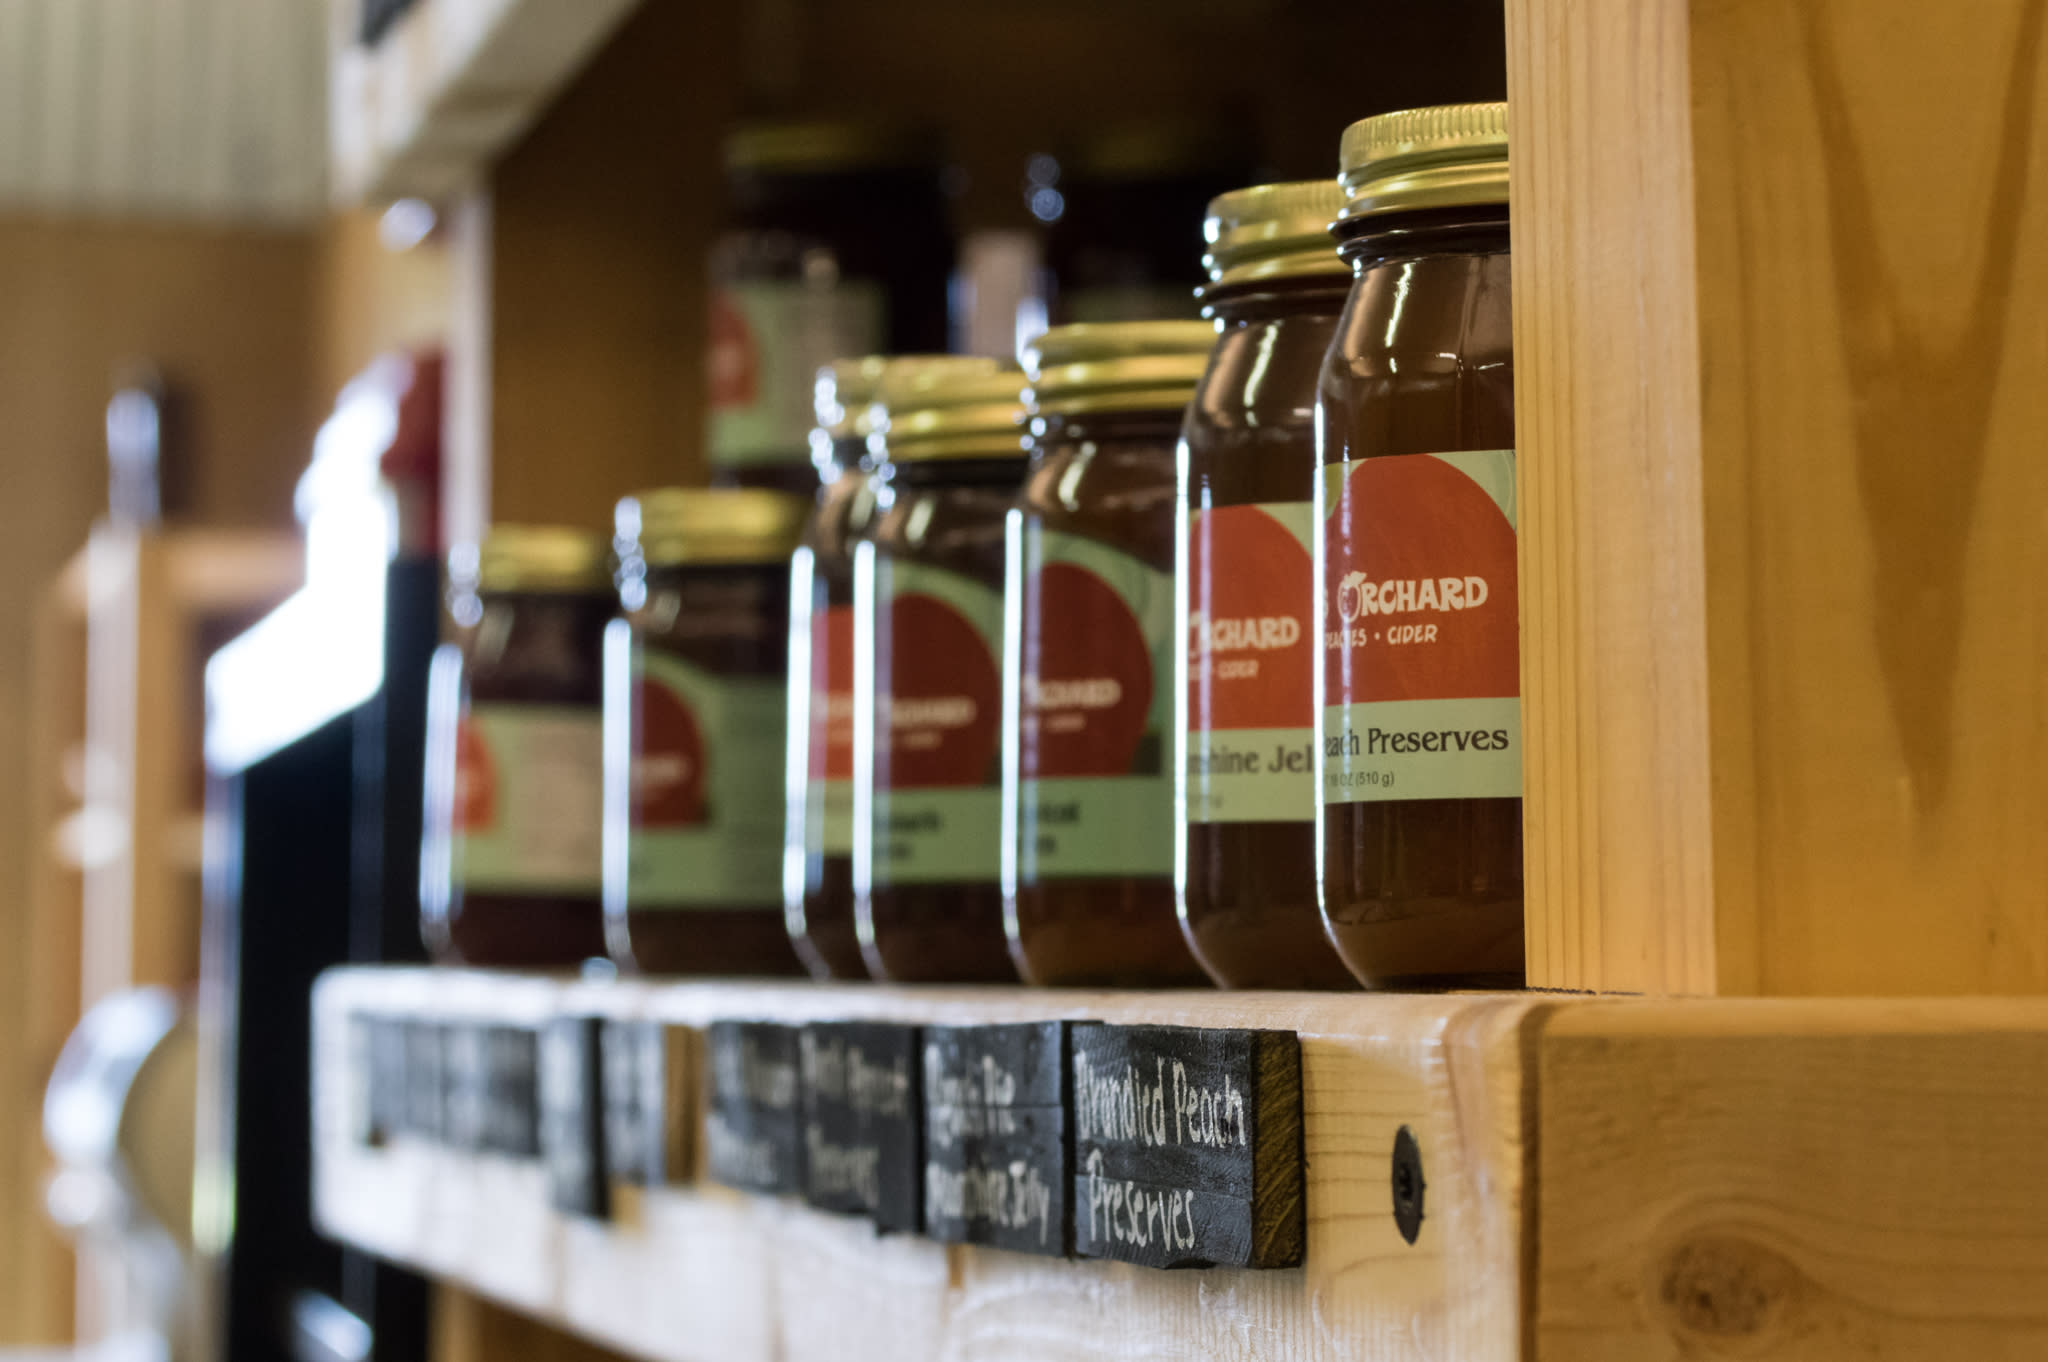 This is a photo of Scott's Orchard jams and preserves